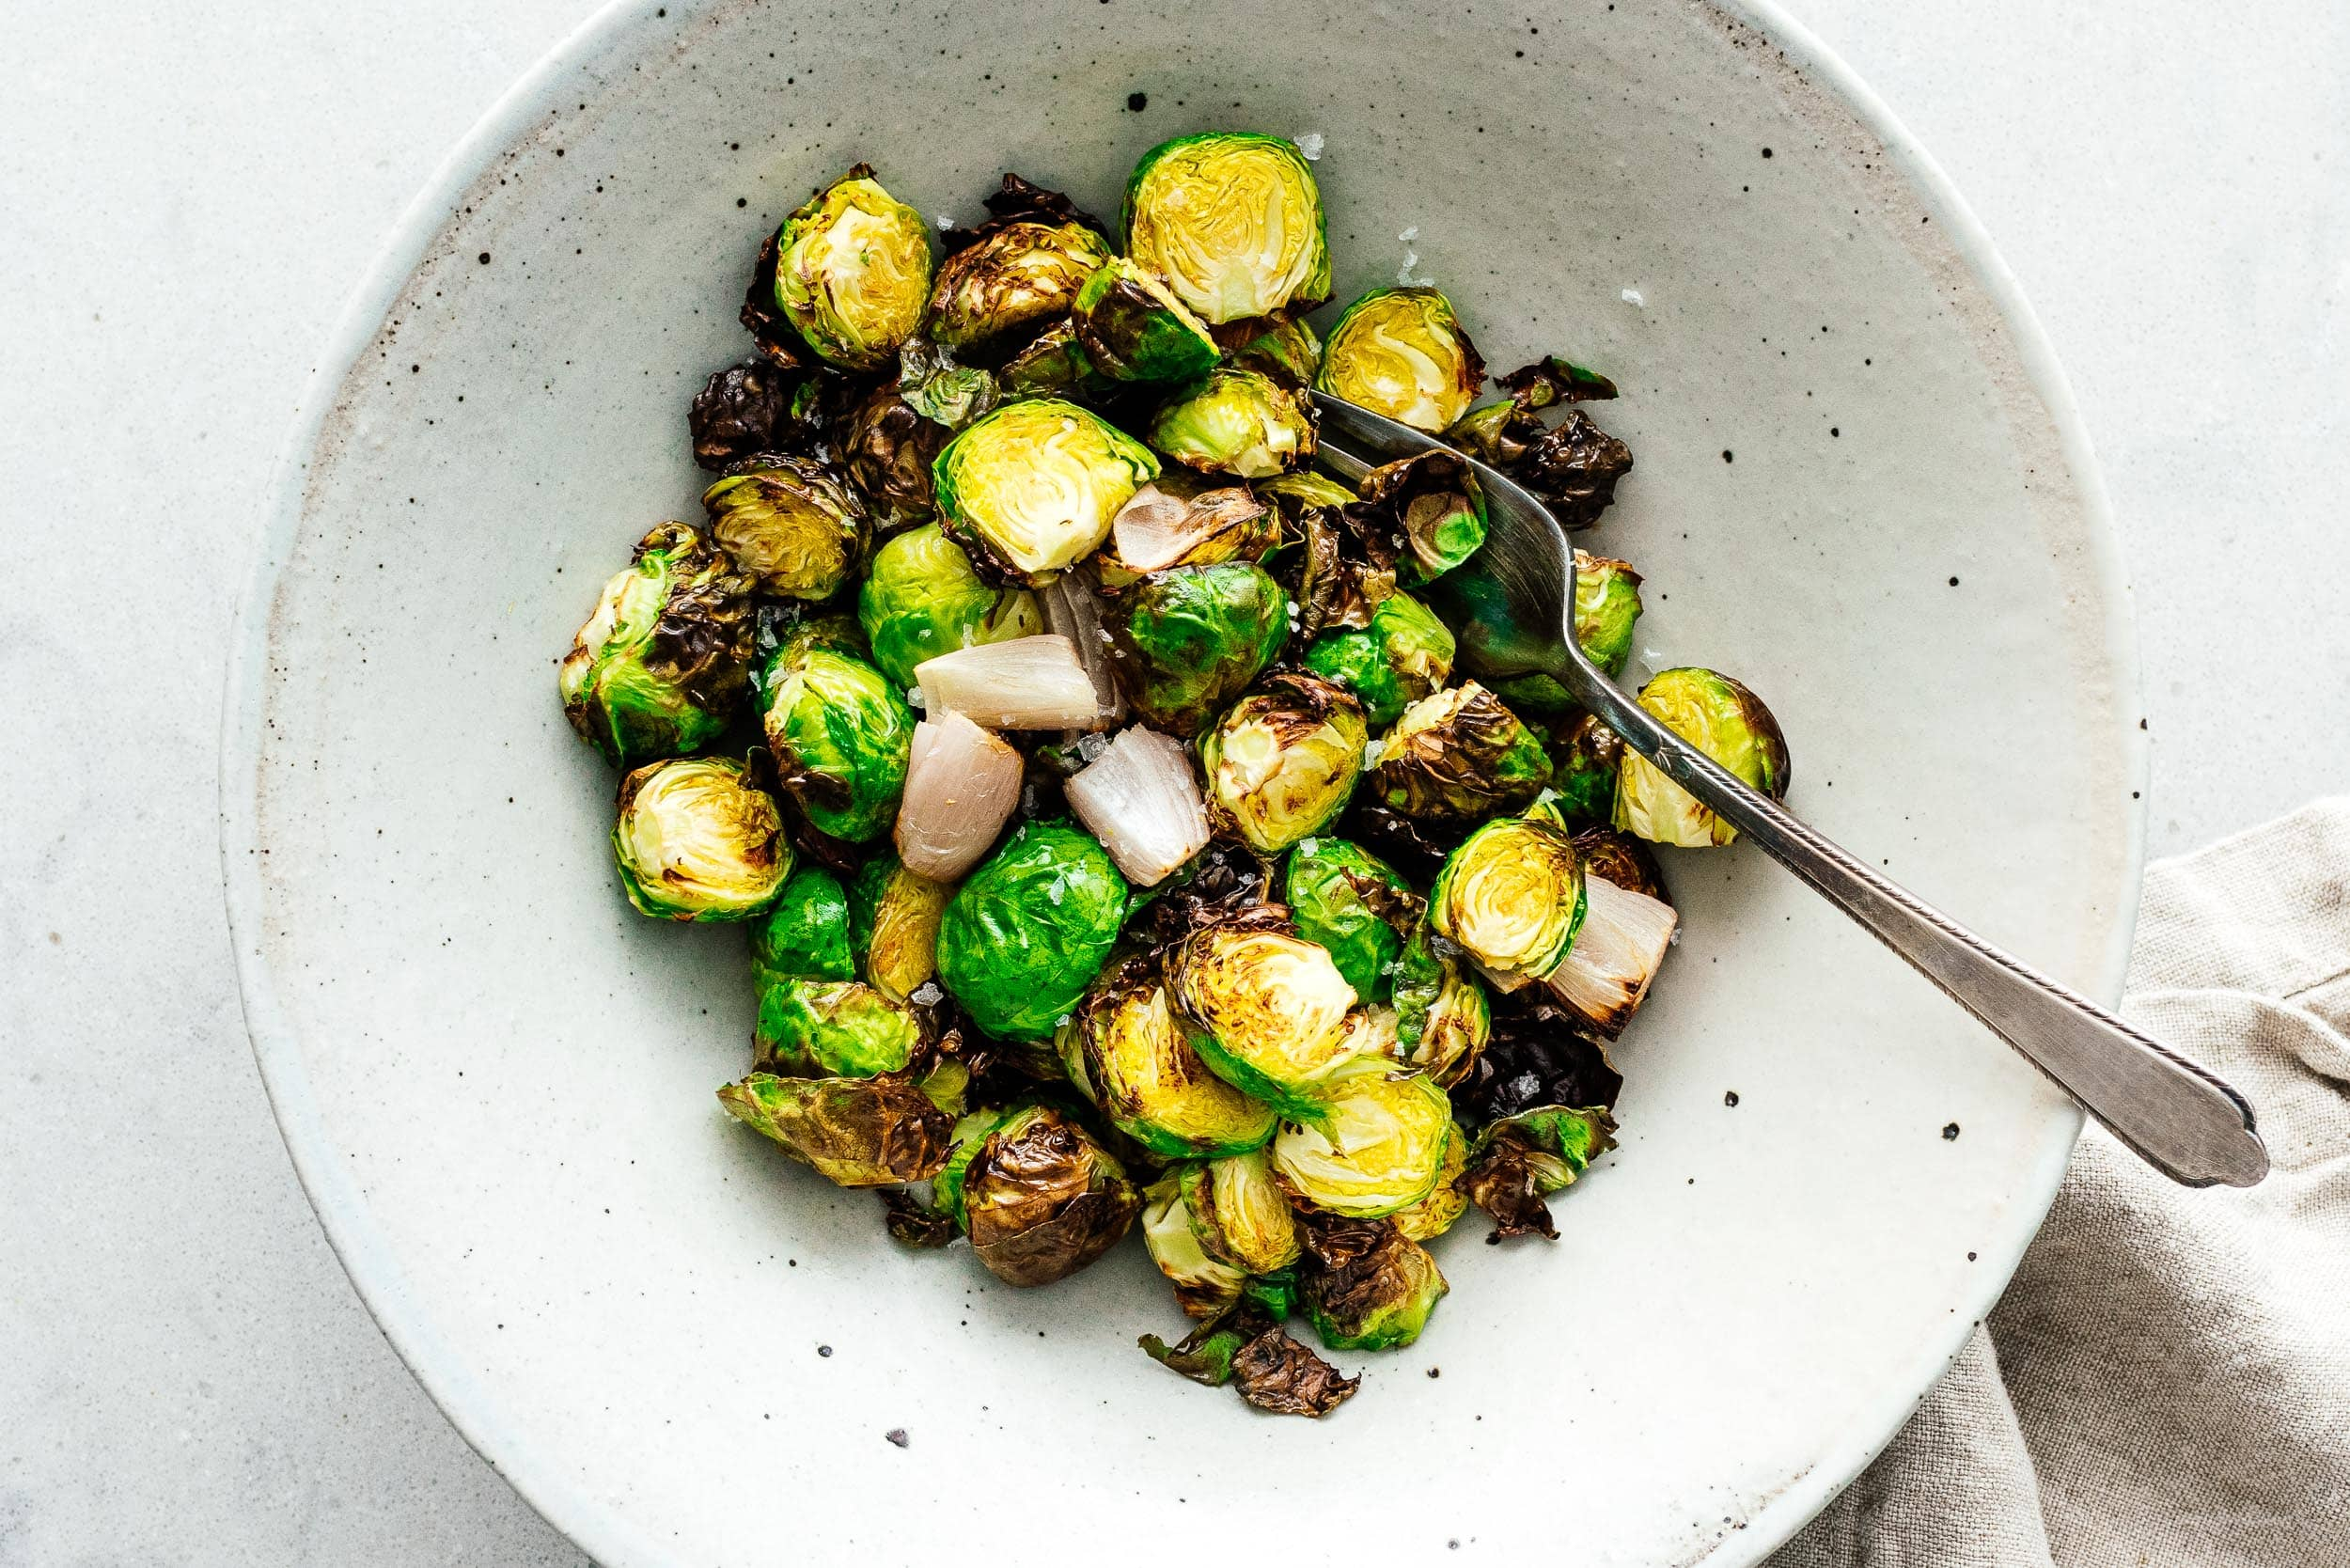 Crispy Roasted Brussels Sprouts | www.iamafoodblog.com